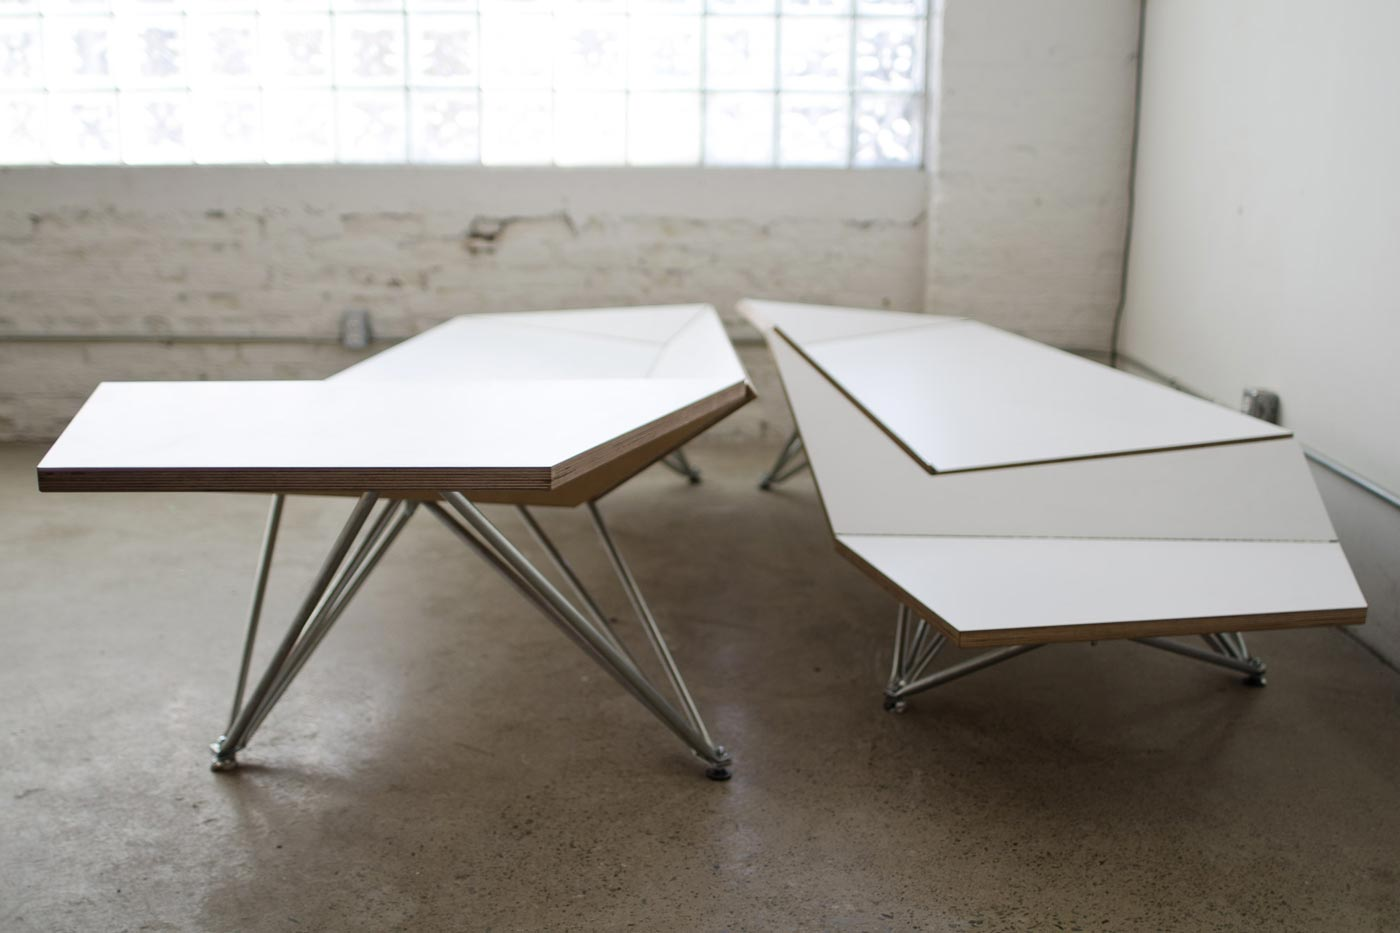 Origami bench by blackLAB architects inc.Inspirationist ... - photo#47